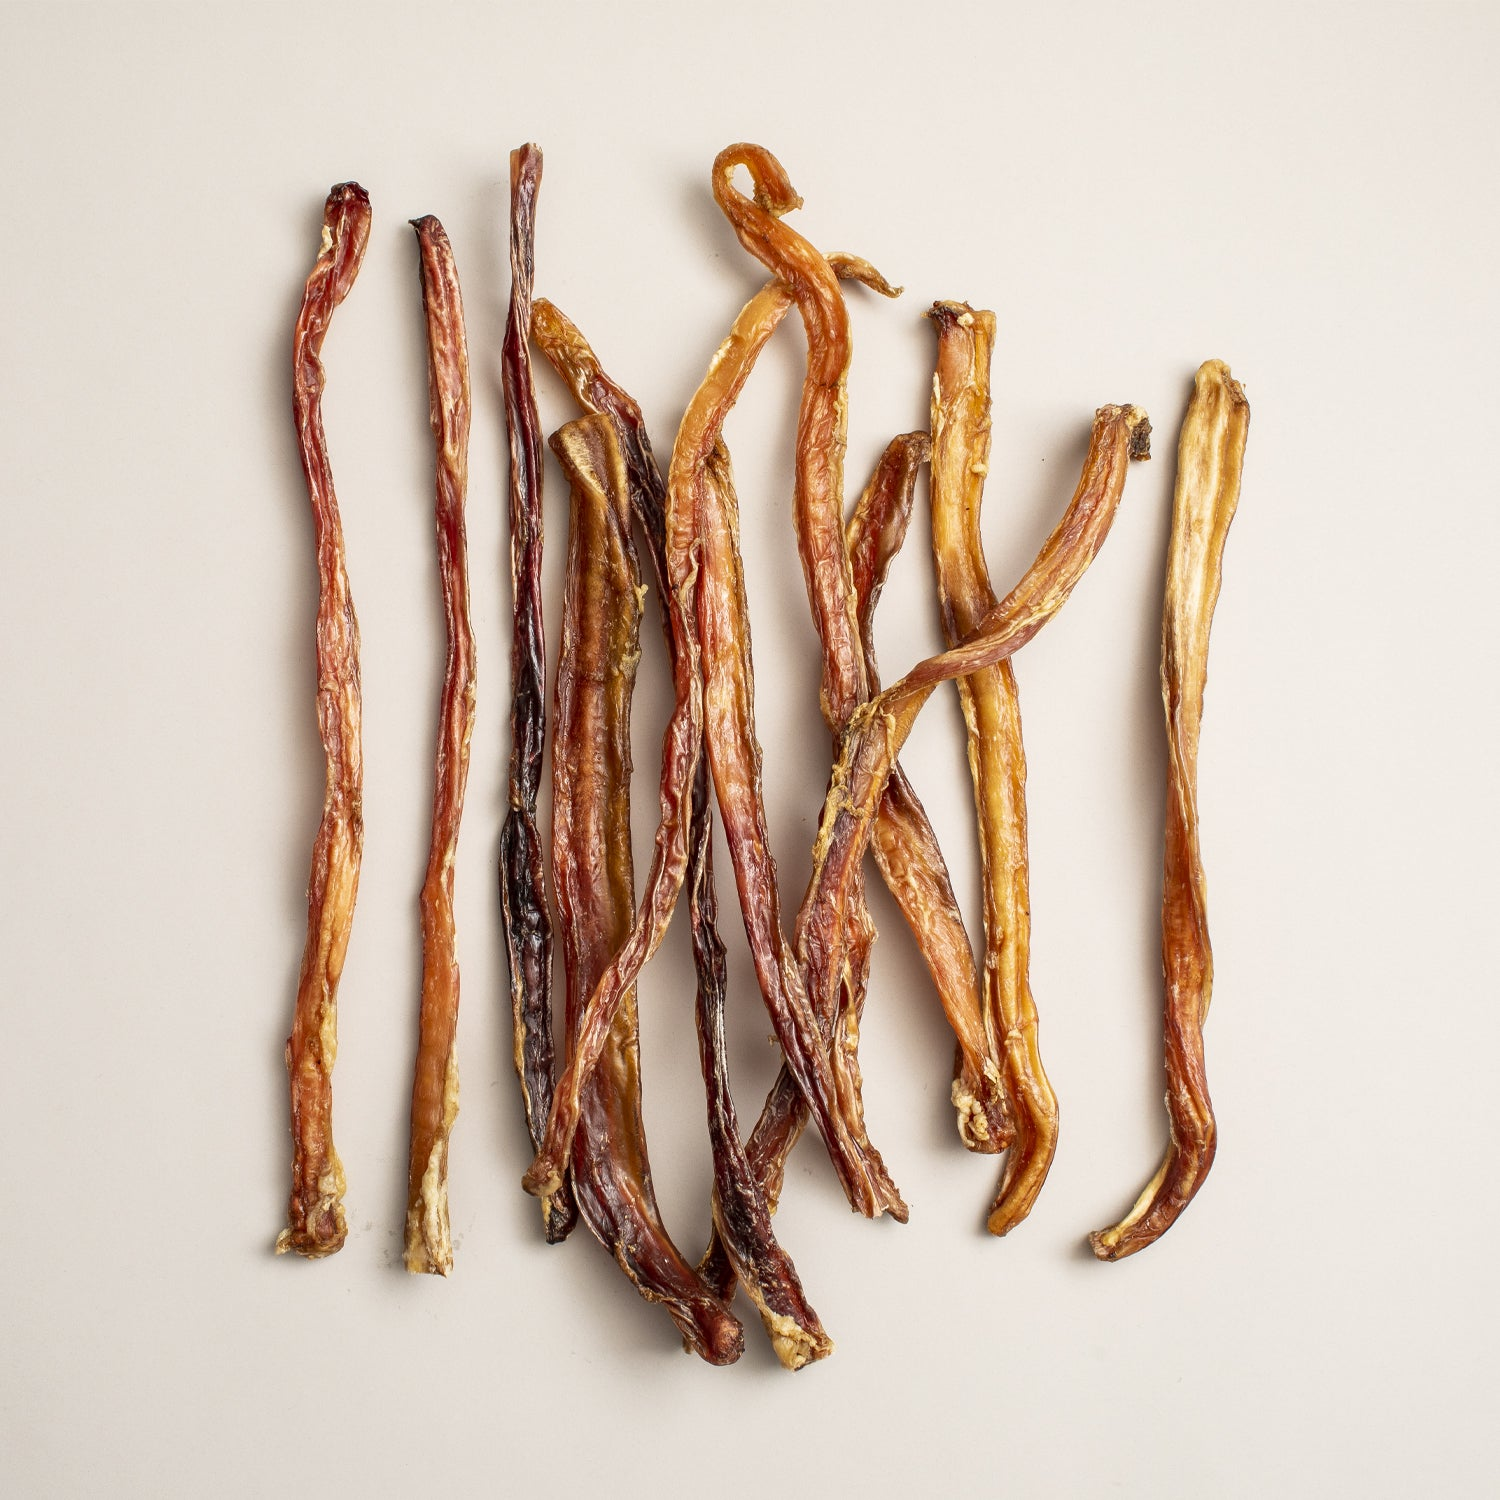 Pasture Raised Bully Sticks